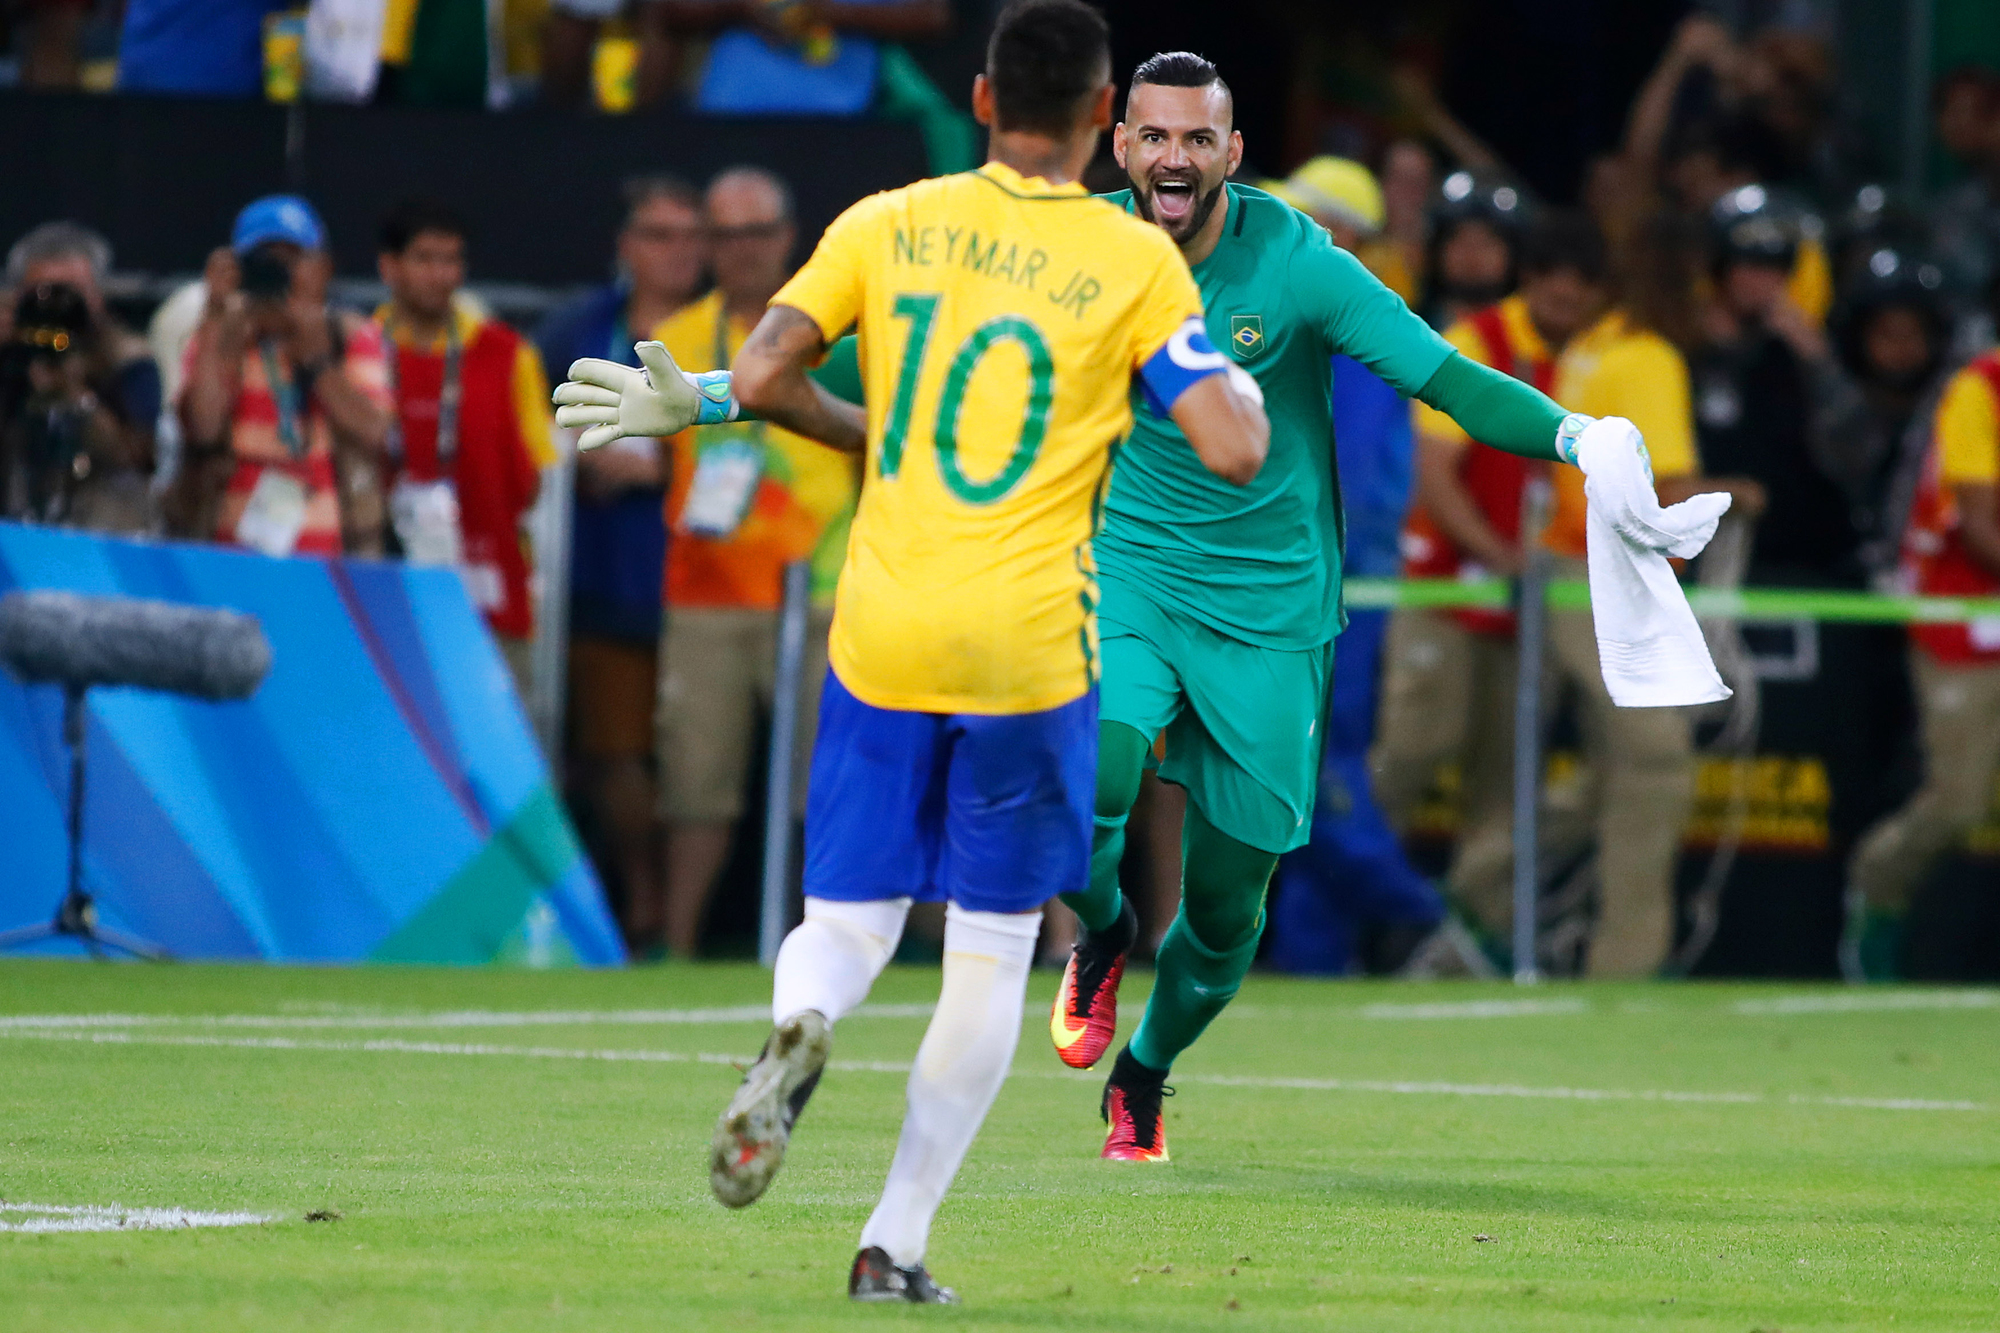 Brazil forward Neymar (10) charges towards goaltender Waverton (1) after Neymar scored the game winning goal in an overtime shoot-out against Germany in the Men's Gold Medal soccer match at the 2016 Rio Summer Olympics in Rio de Janeiro, Brazil, on August 20, 2016. Brazil defeated Germany in 5-4 in overtime penalty kicks.